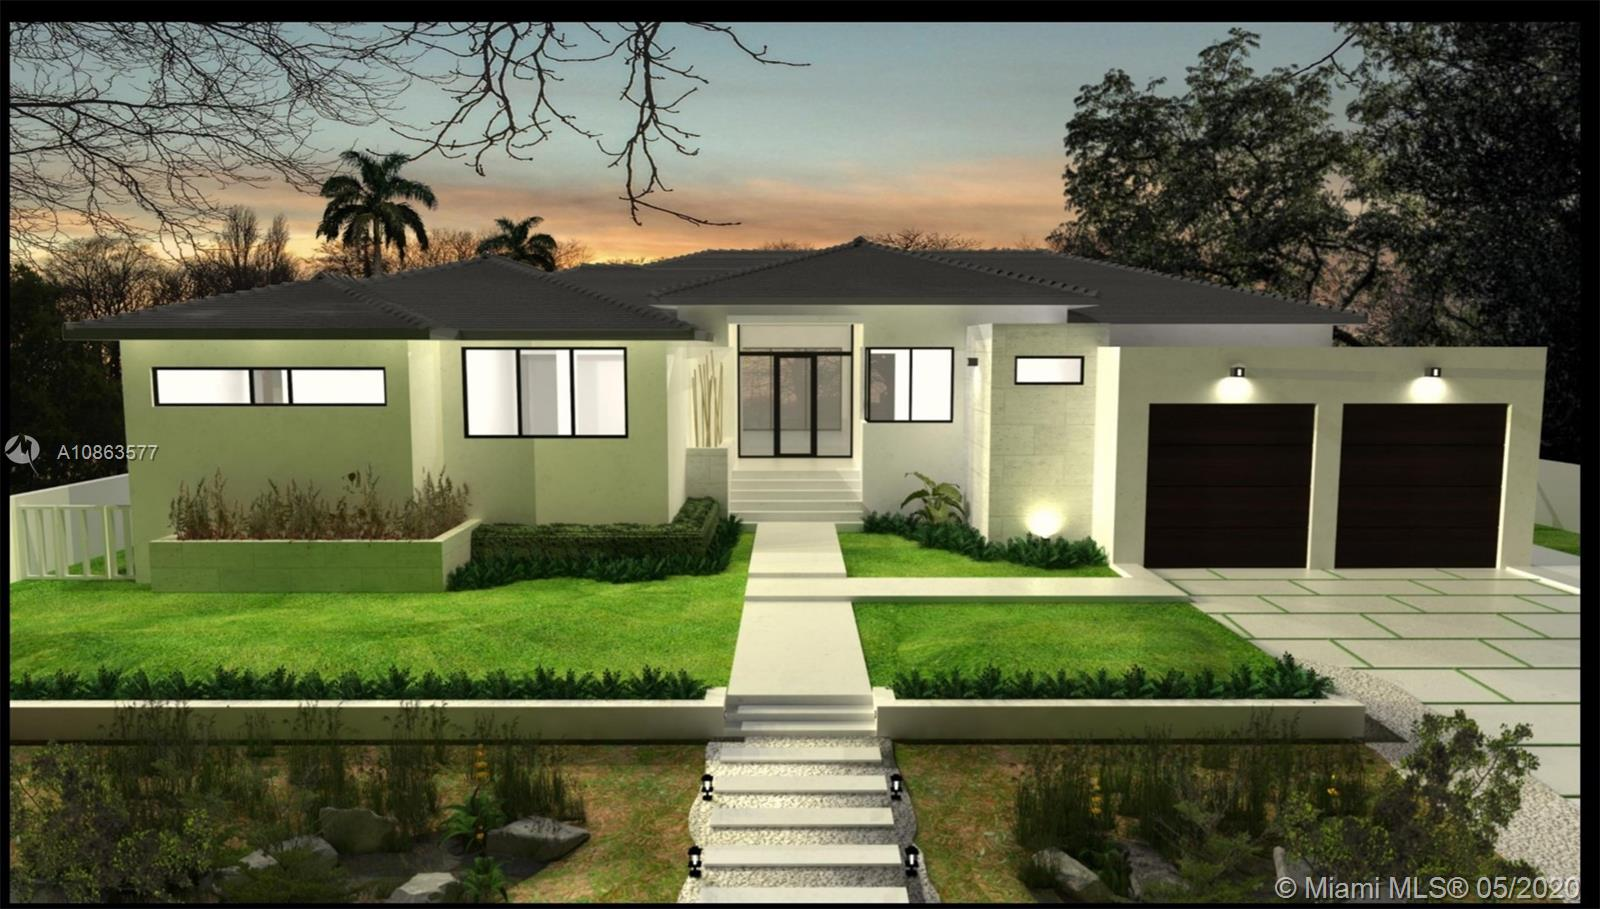 BRAND NEW 2020 CONSTRUCTION. Luxury single family home in beautiful gated Belle Meade. Total of 4,237sf with 4br/4.5ba, huge covered lanai and 2 car garage. Spacious light-filled living/kitchen/dining/family rooms open to back yard with salt-chlorinated pool 30x14 pool. 10.5' finished ceilings, huge master suite with massive closet and spa-like bathroom. All bedrooms have en-suite bathrooms. All closets include built-ins. True chefs kitchen with plenty of storage in custom MIACUCINA cabinetry, huge island, full subzero/wolf appliance package. Top quality impact windows/doors. Permanent generator. A+ location, minutes from Miami Beach, Design District, Wynwood, Downtown & more. Delivery end of 2020.